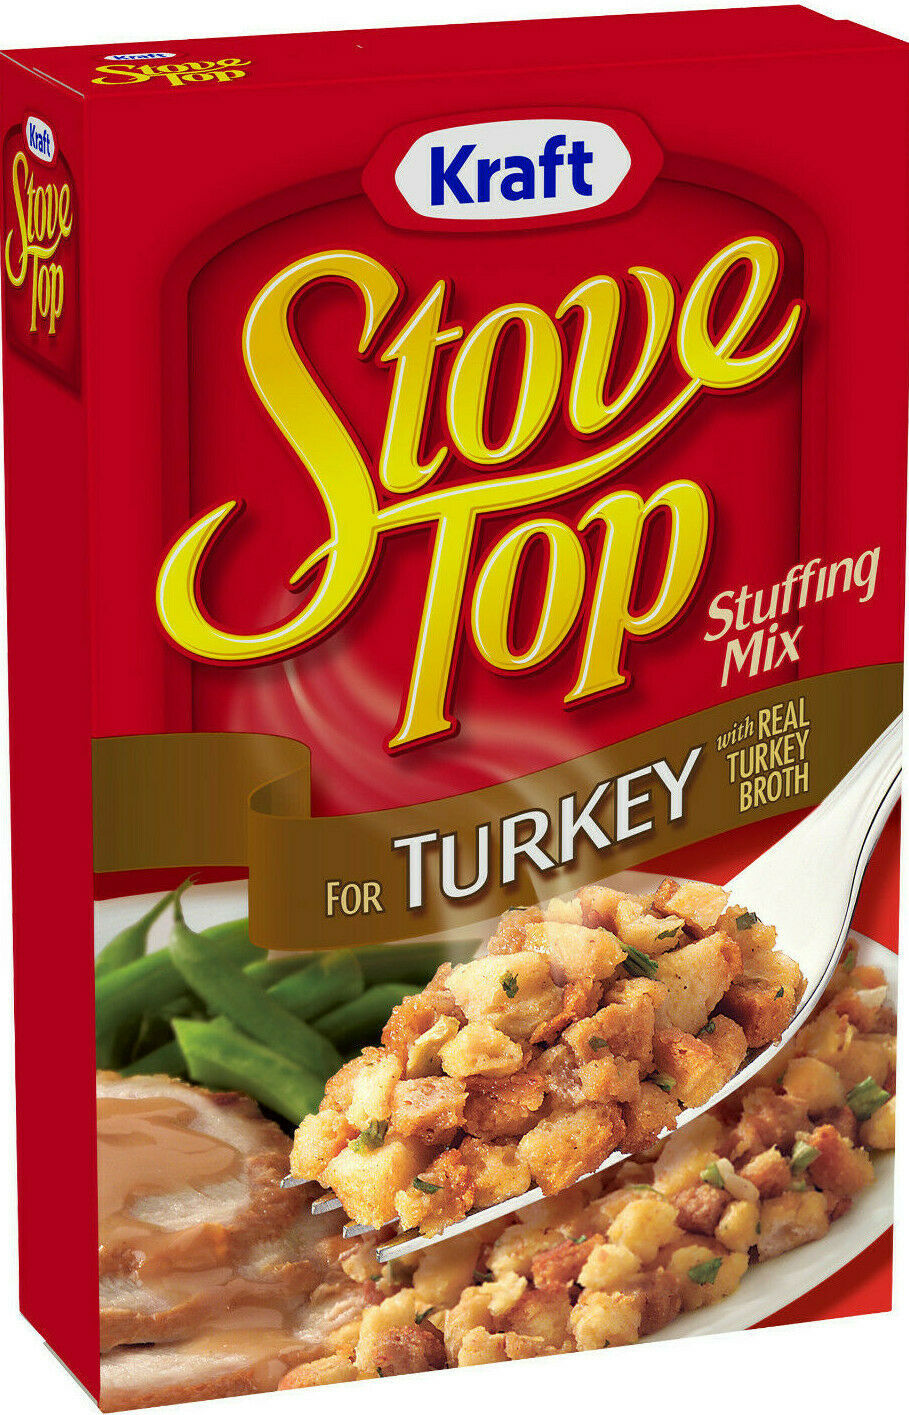 Primary image for Kraft Stove Top Turkey Stuffing Mix, 6 oz Box (3 Pack) ~ Fast Free Shipping !